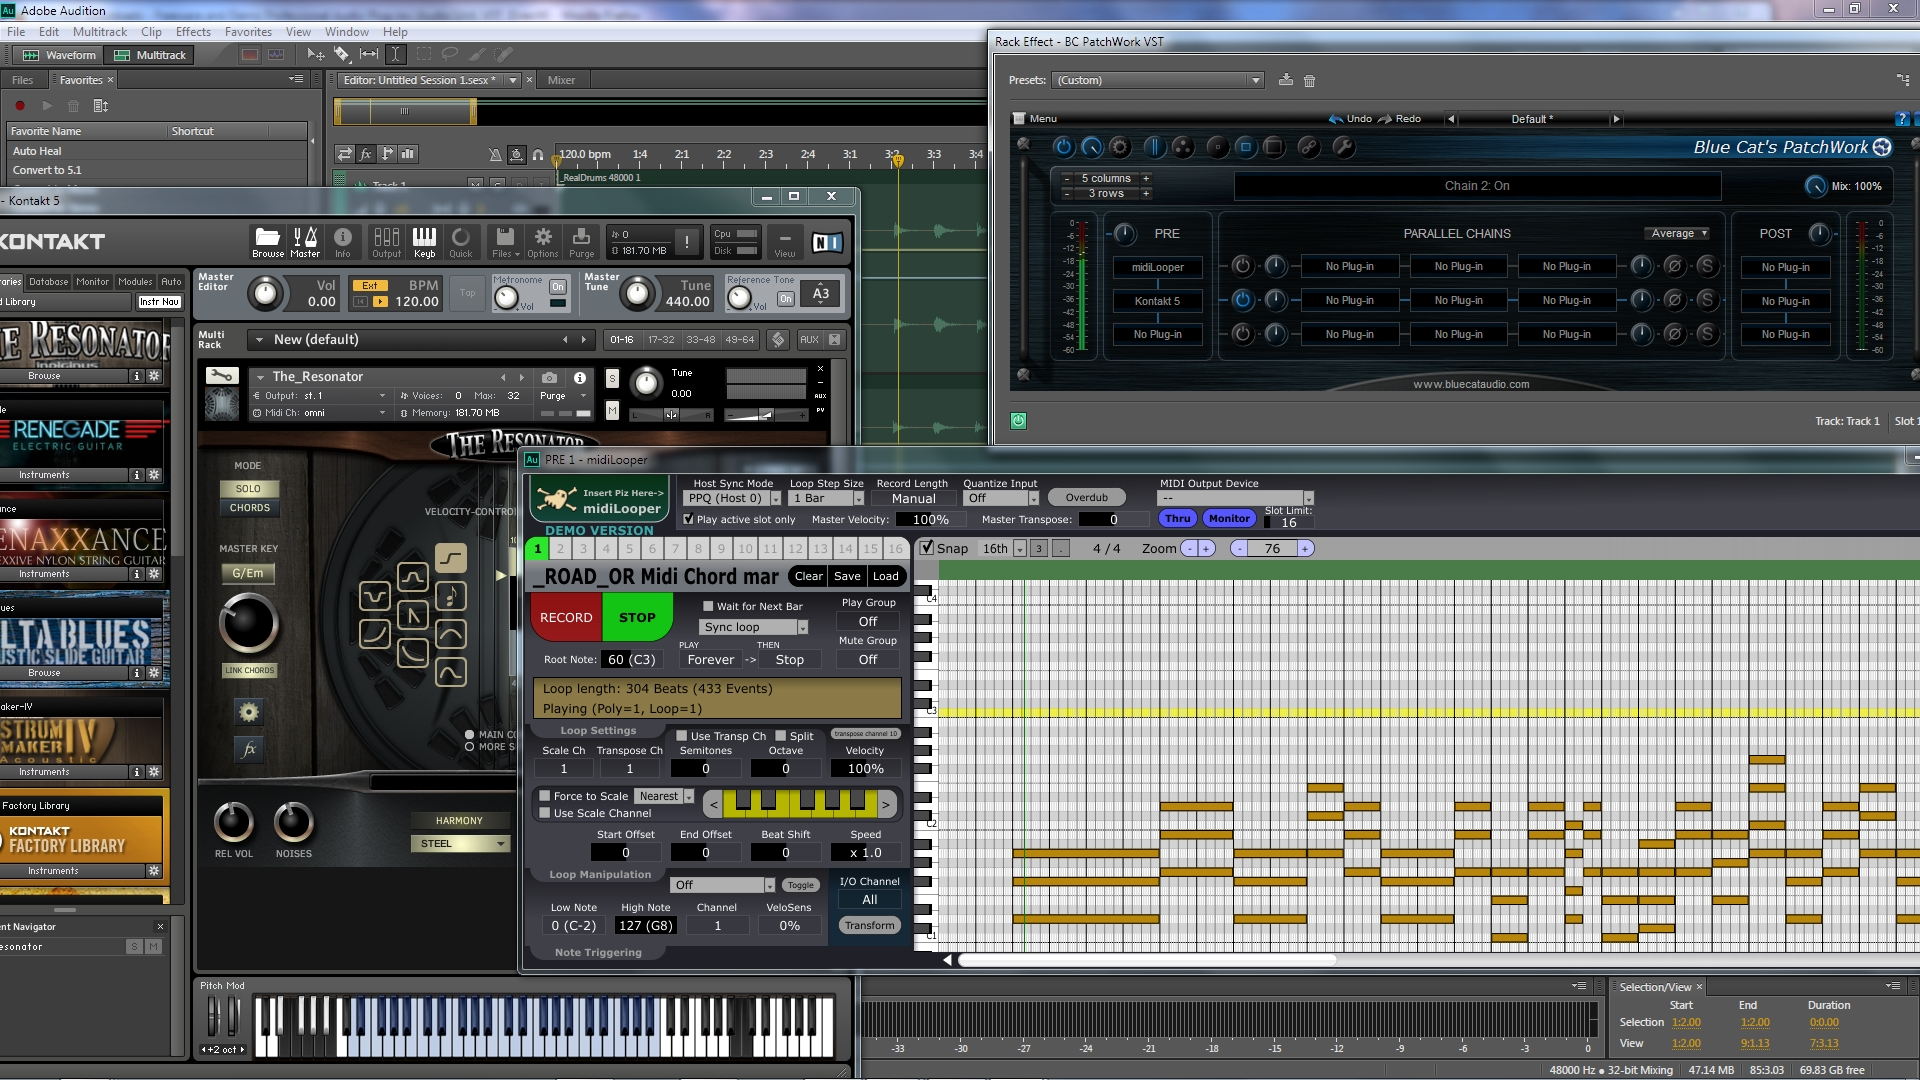 adobe audition 5.0 free download